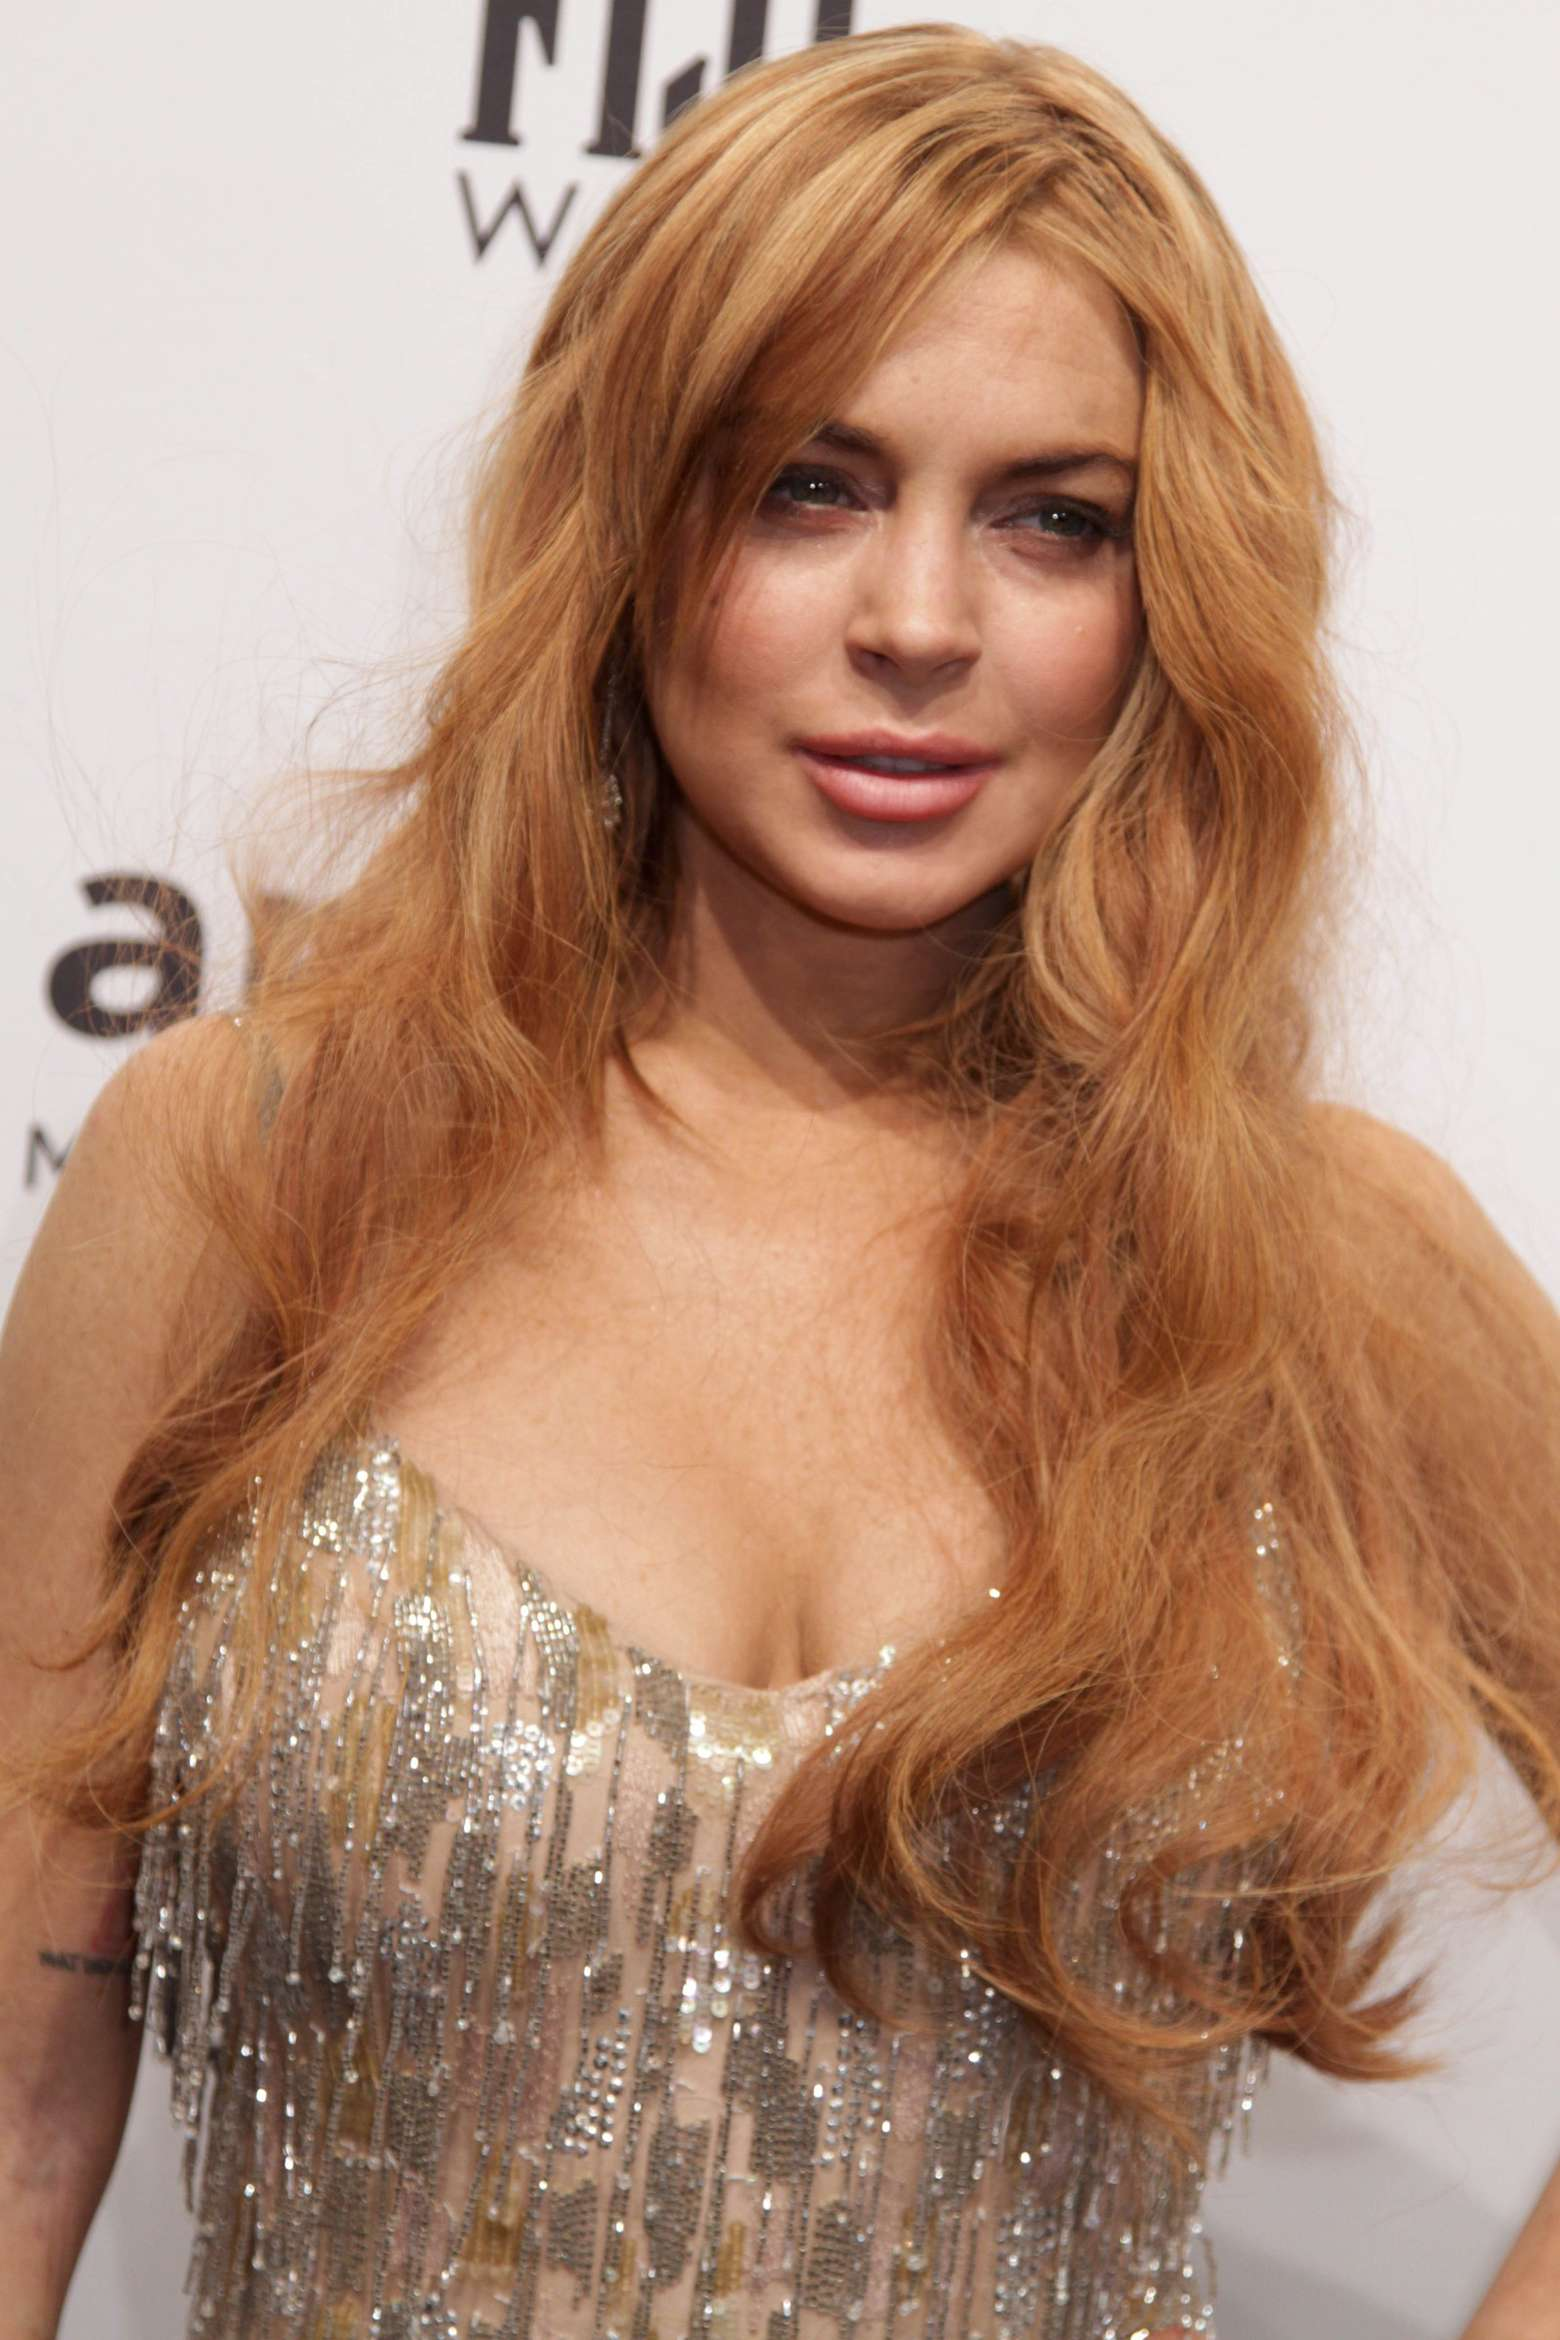 As lindsay lohan any more